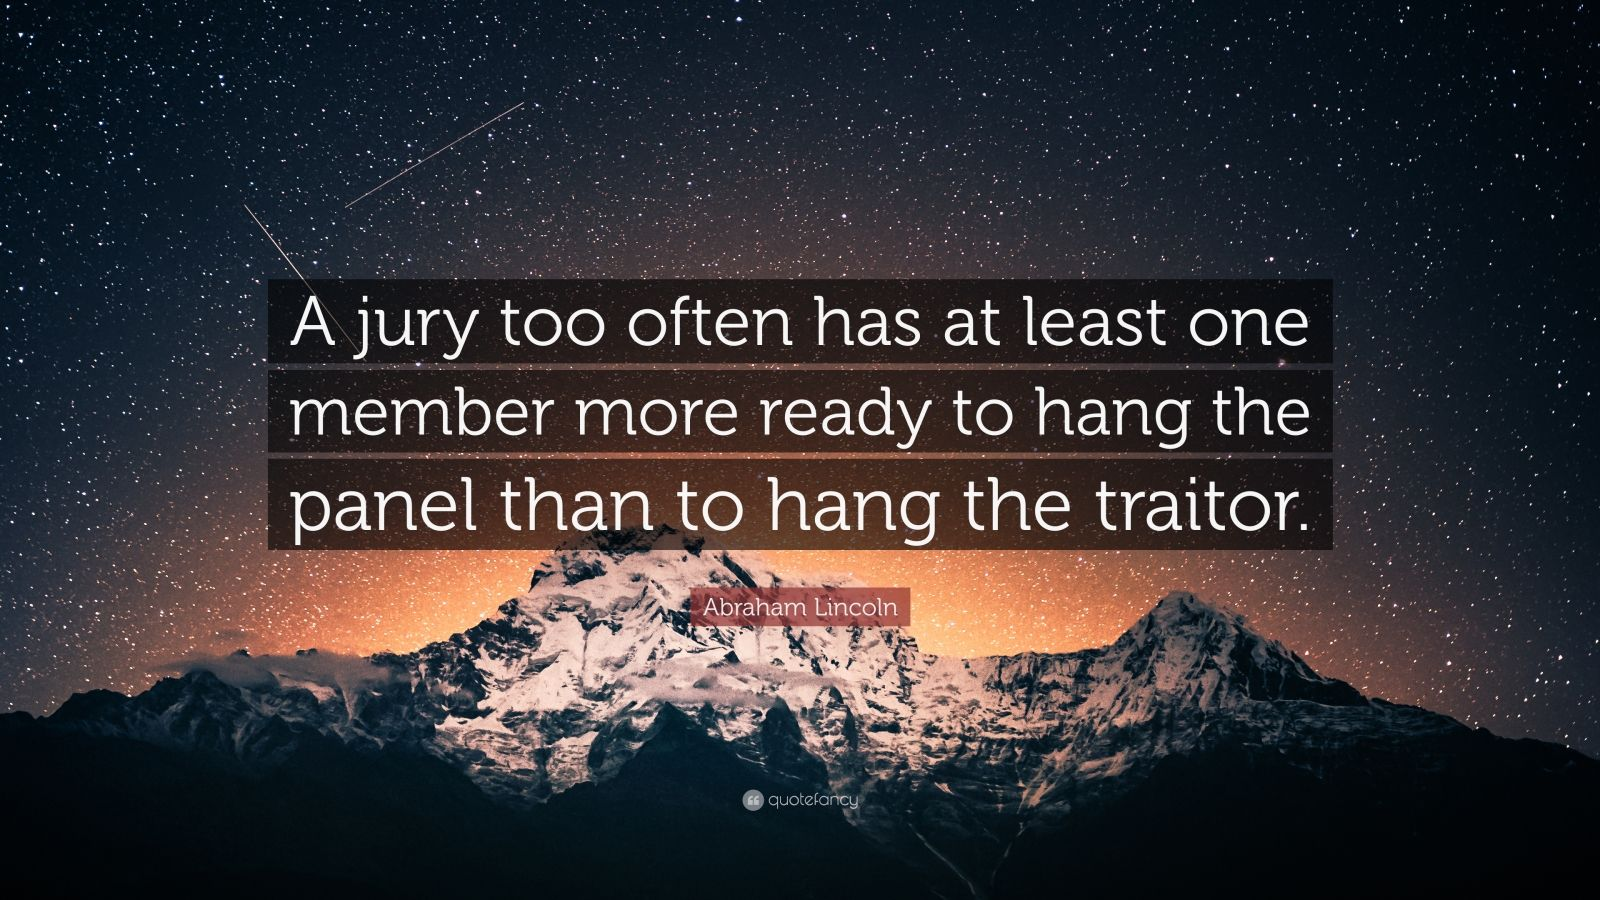 """Abraham Lincoln Quote: """"A jury too often has at least one member more ready to hang the panel than to hang the traitor."""""""